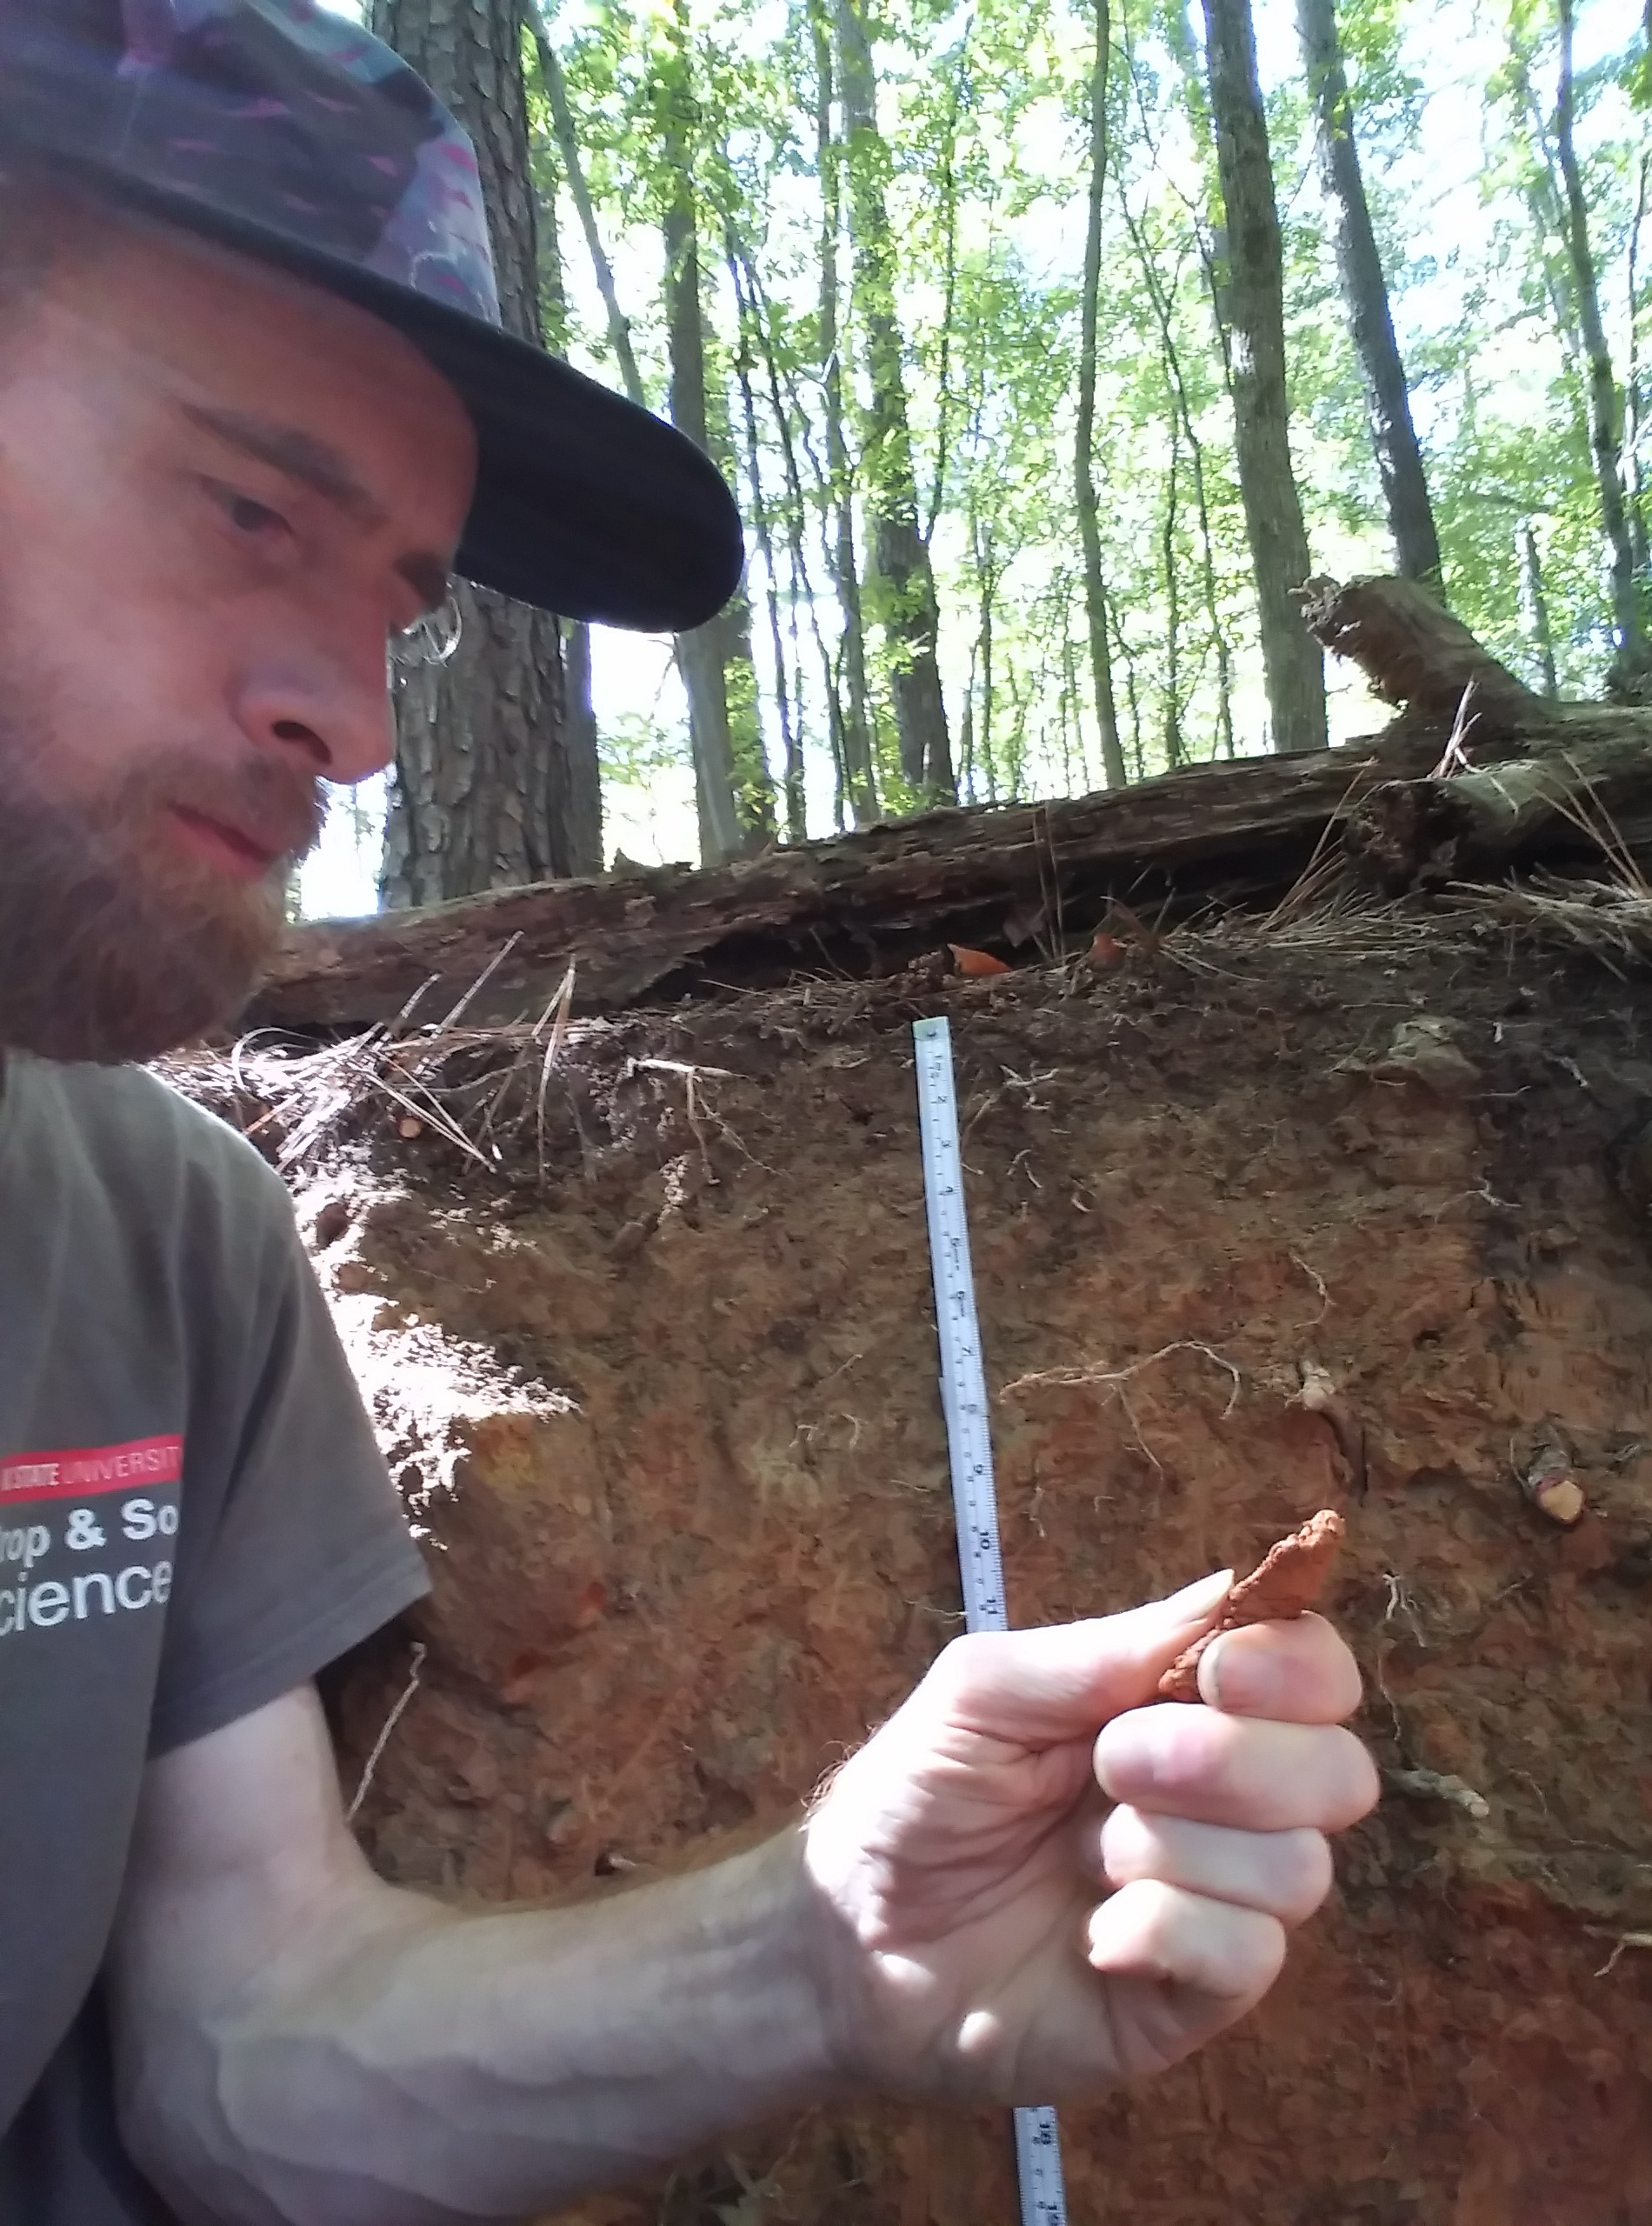 Student handles soil sample outdoors